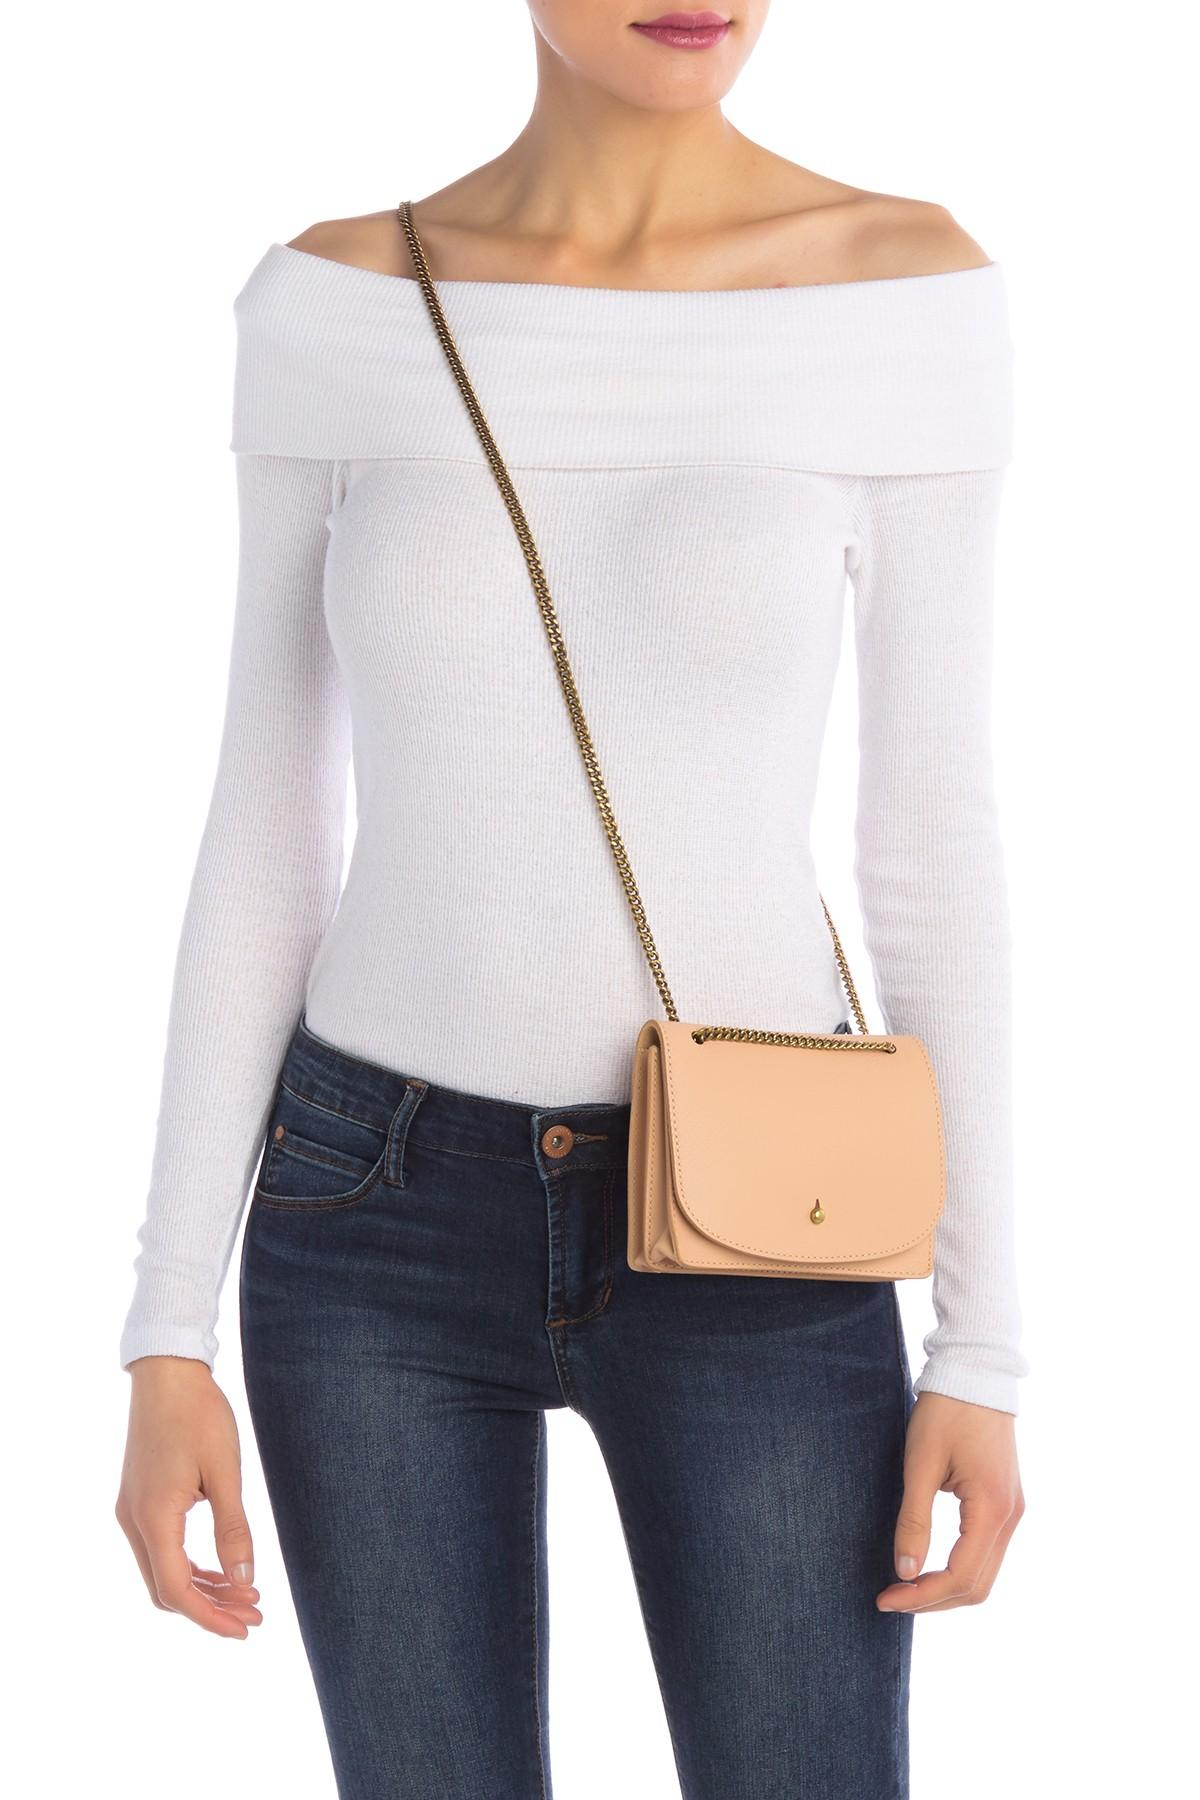 The Chain Leather Crossbody Bag